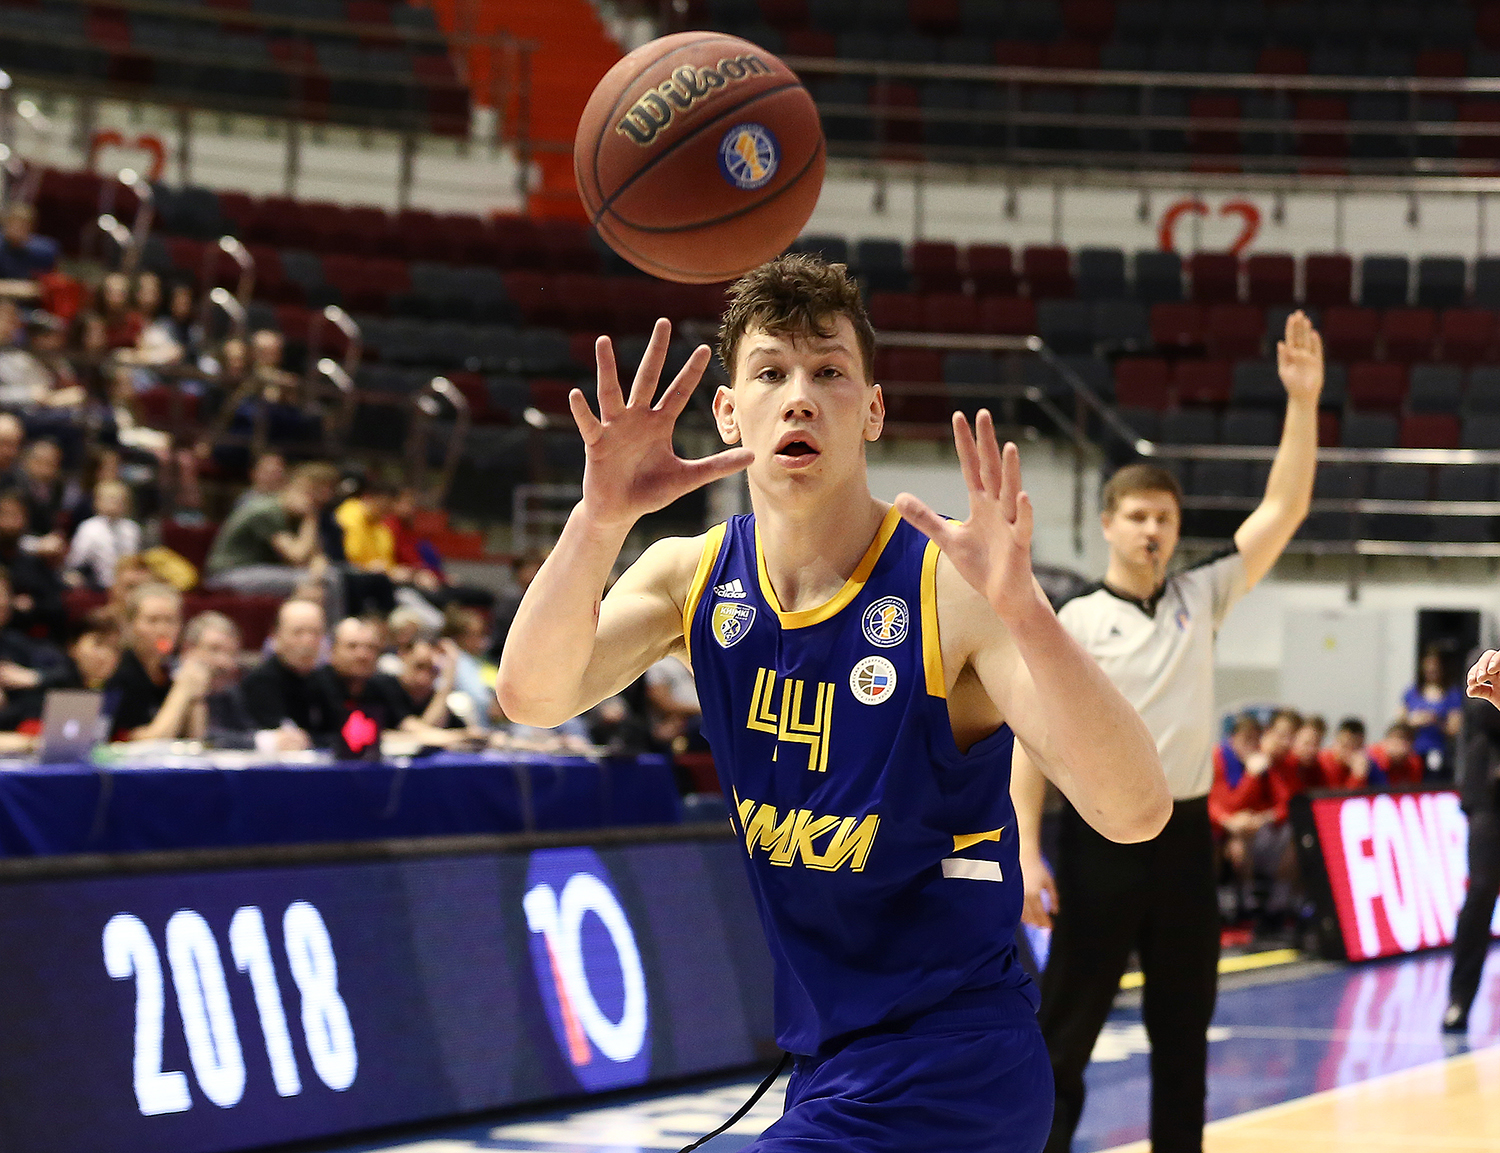 Ilya Sorokin: My Dad Tells Me To Be Like Georgios Printezis